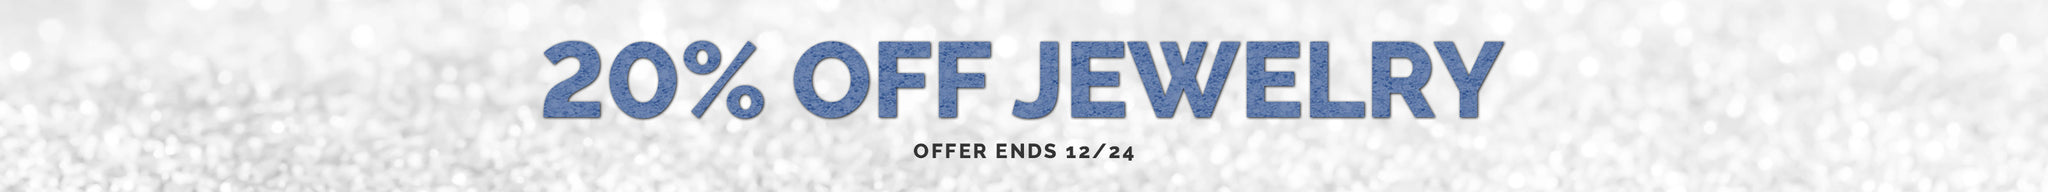 20% Off Jewelry. Offer ends December 24th,